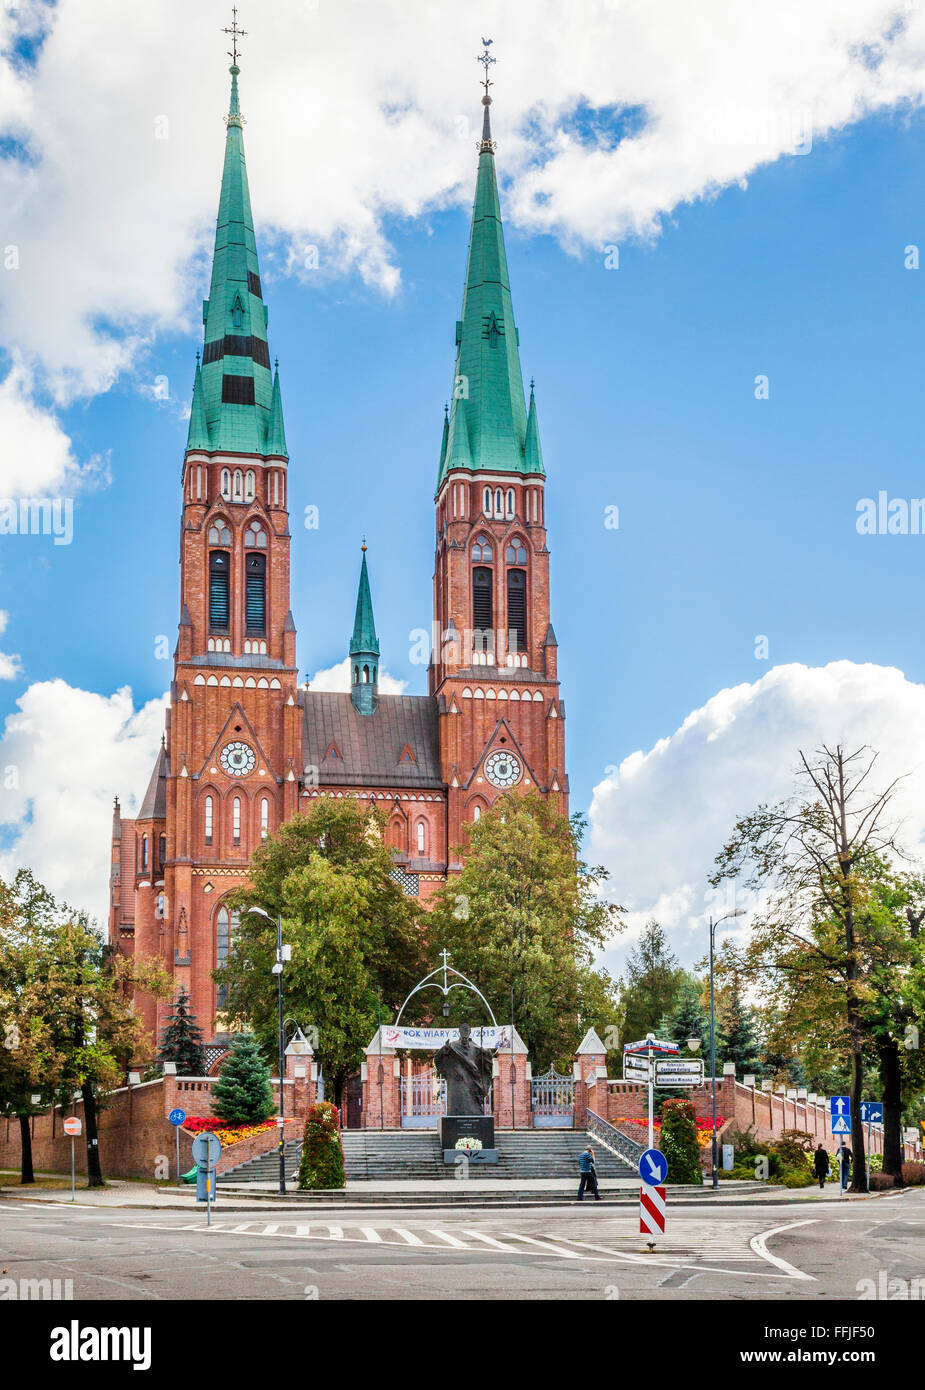 Poland, southwestern Poland, Silesian Voivodship, Rybnik, view of the neo-Gothic red-brick facade of St. Antonio's - Stock Image